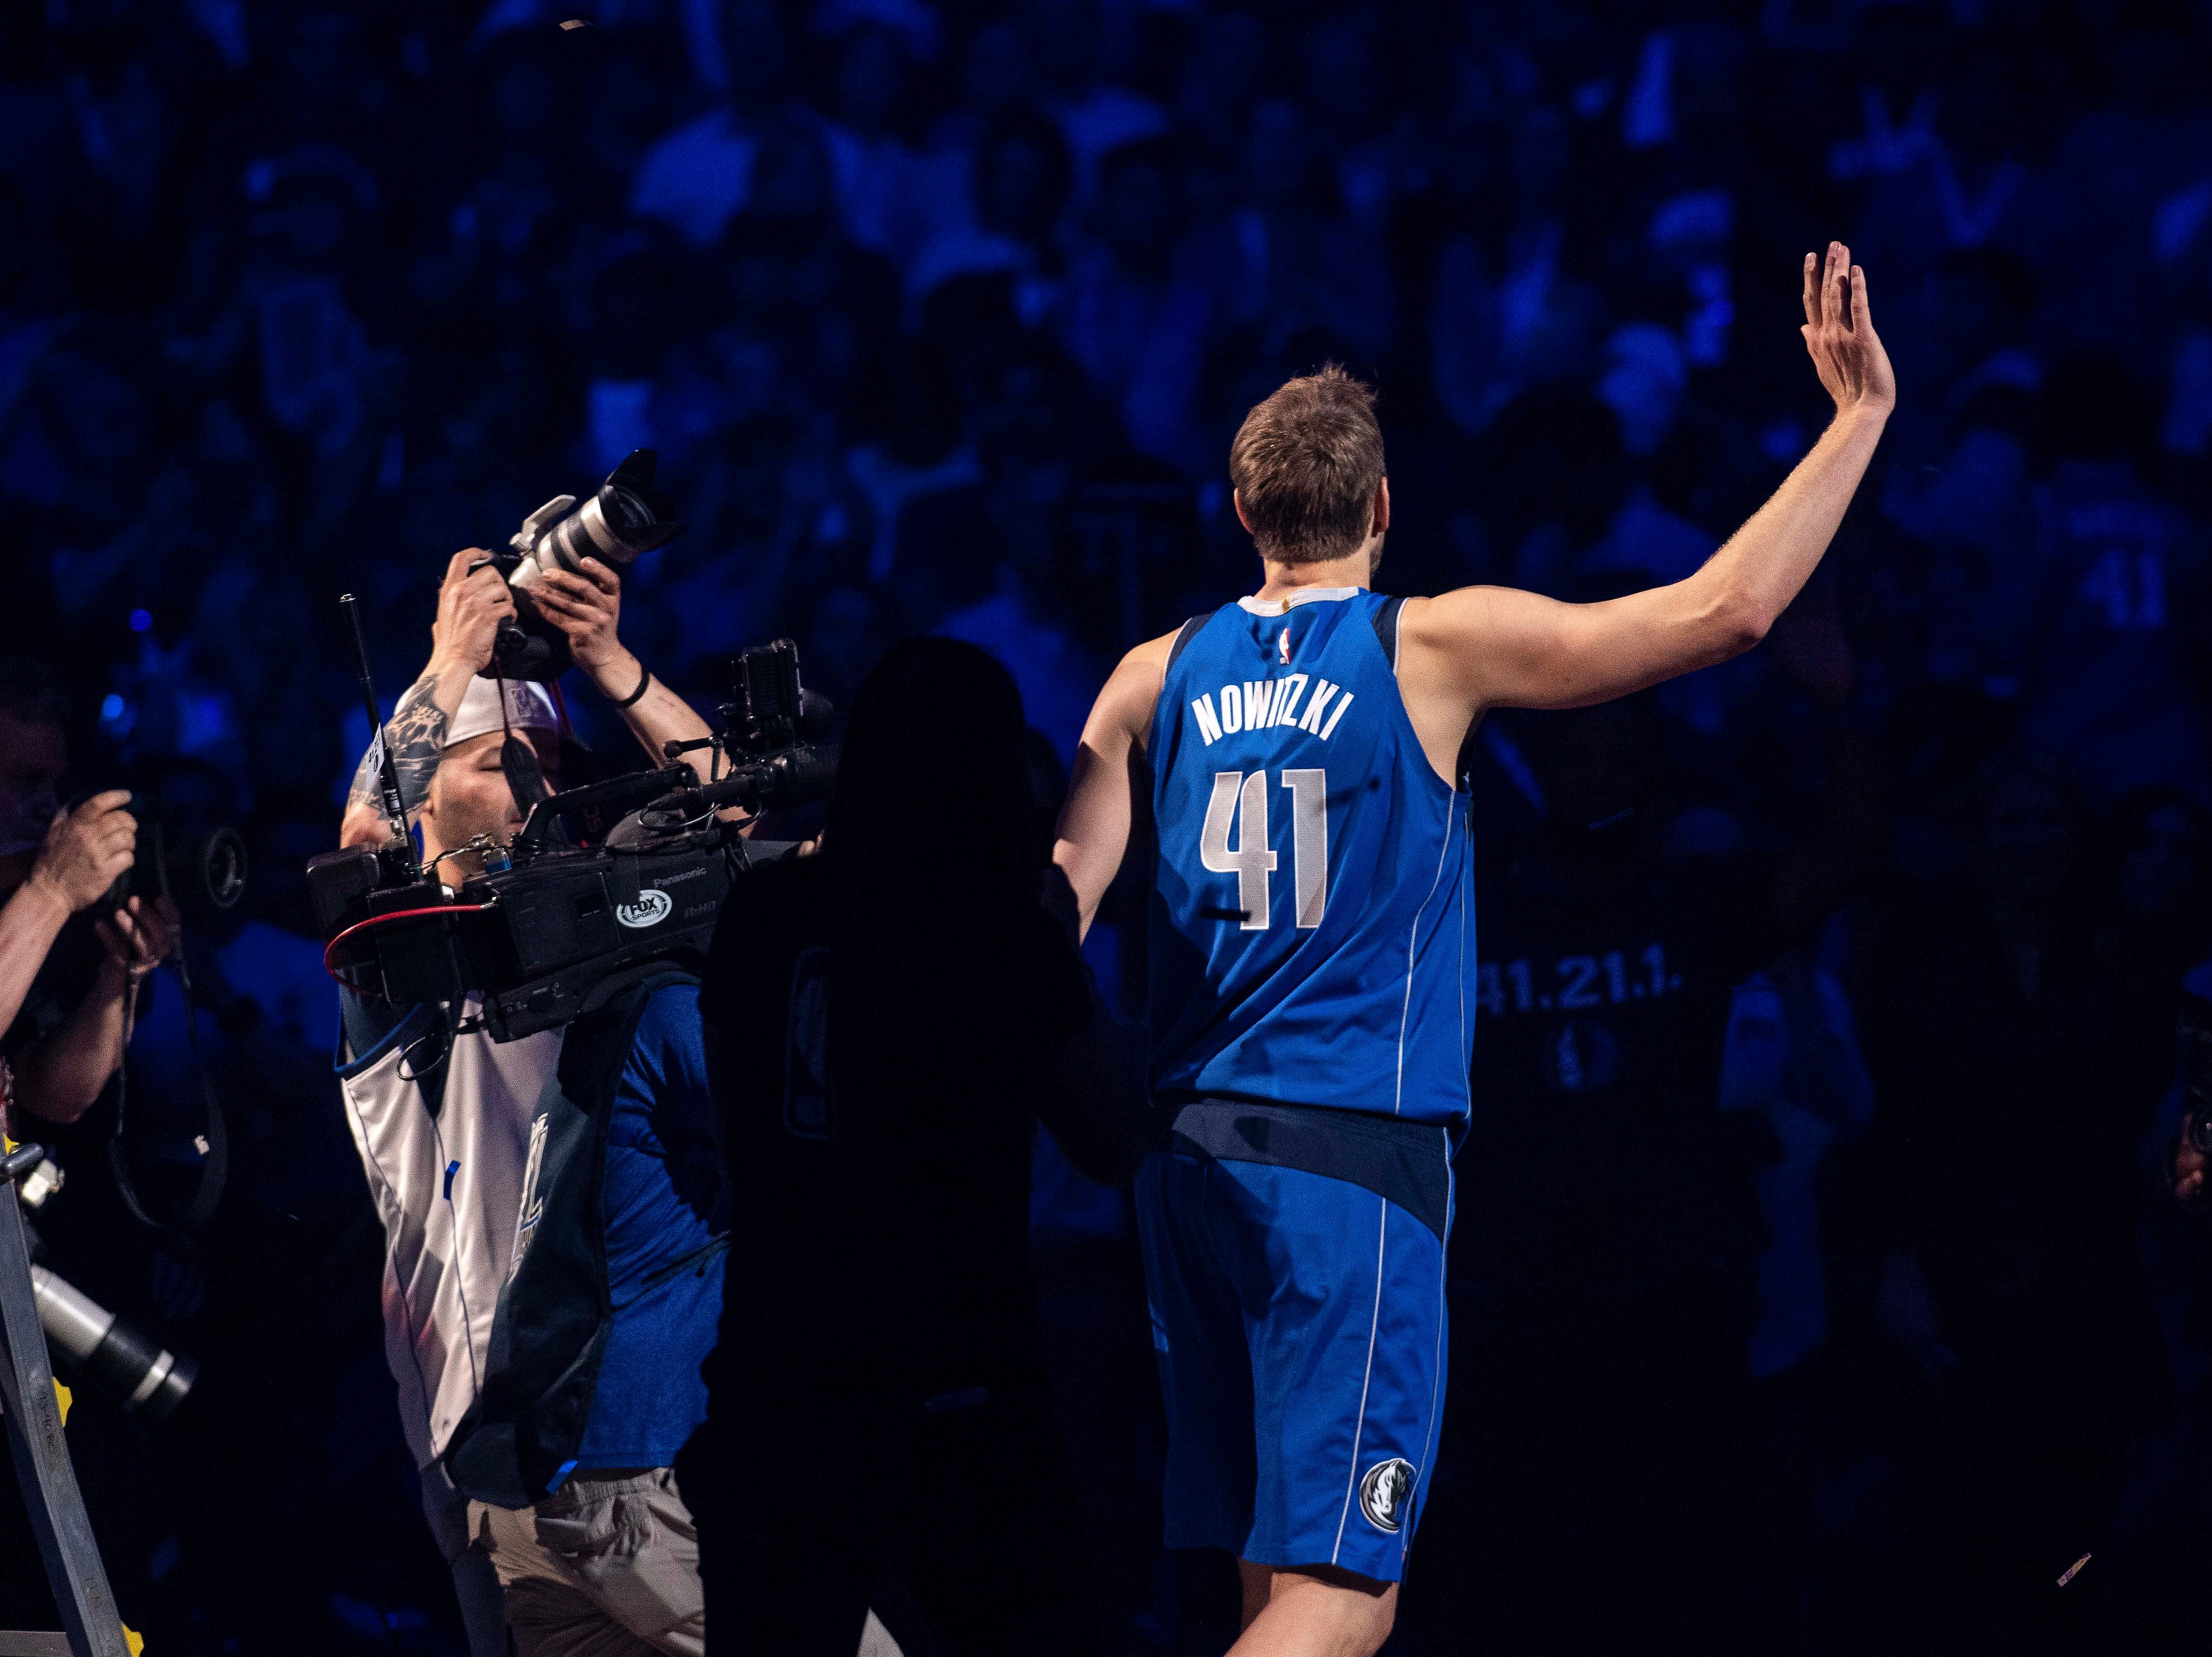 April 9: Dallas Mavericks forward Dirk Nowitzki walks off the court after announcing his retirement from the NBA.